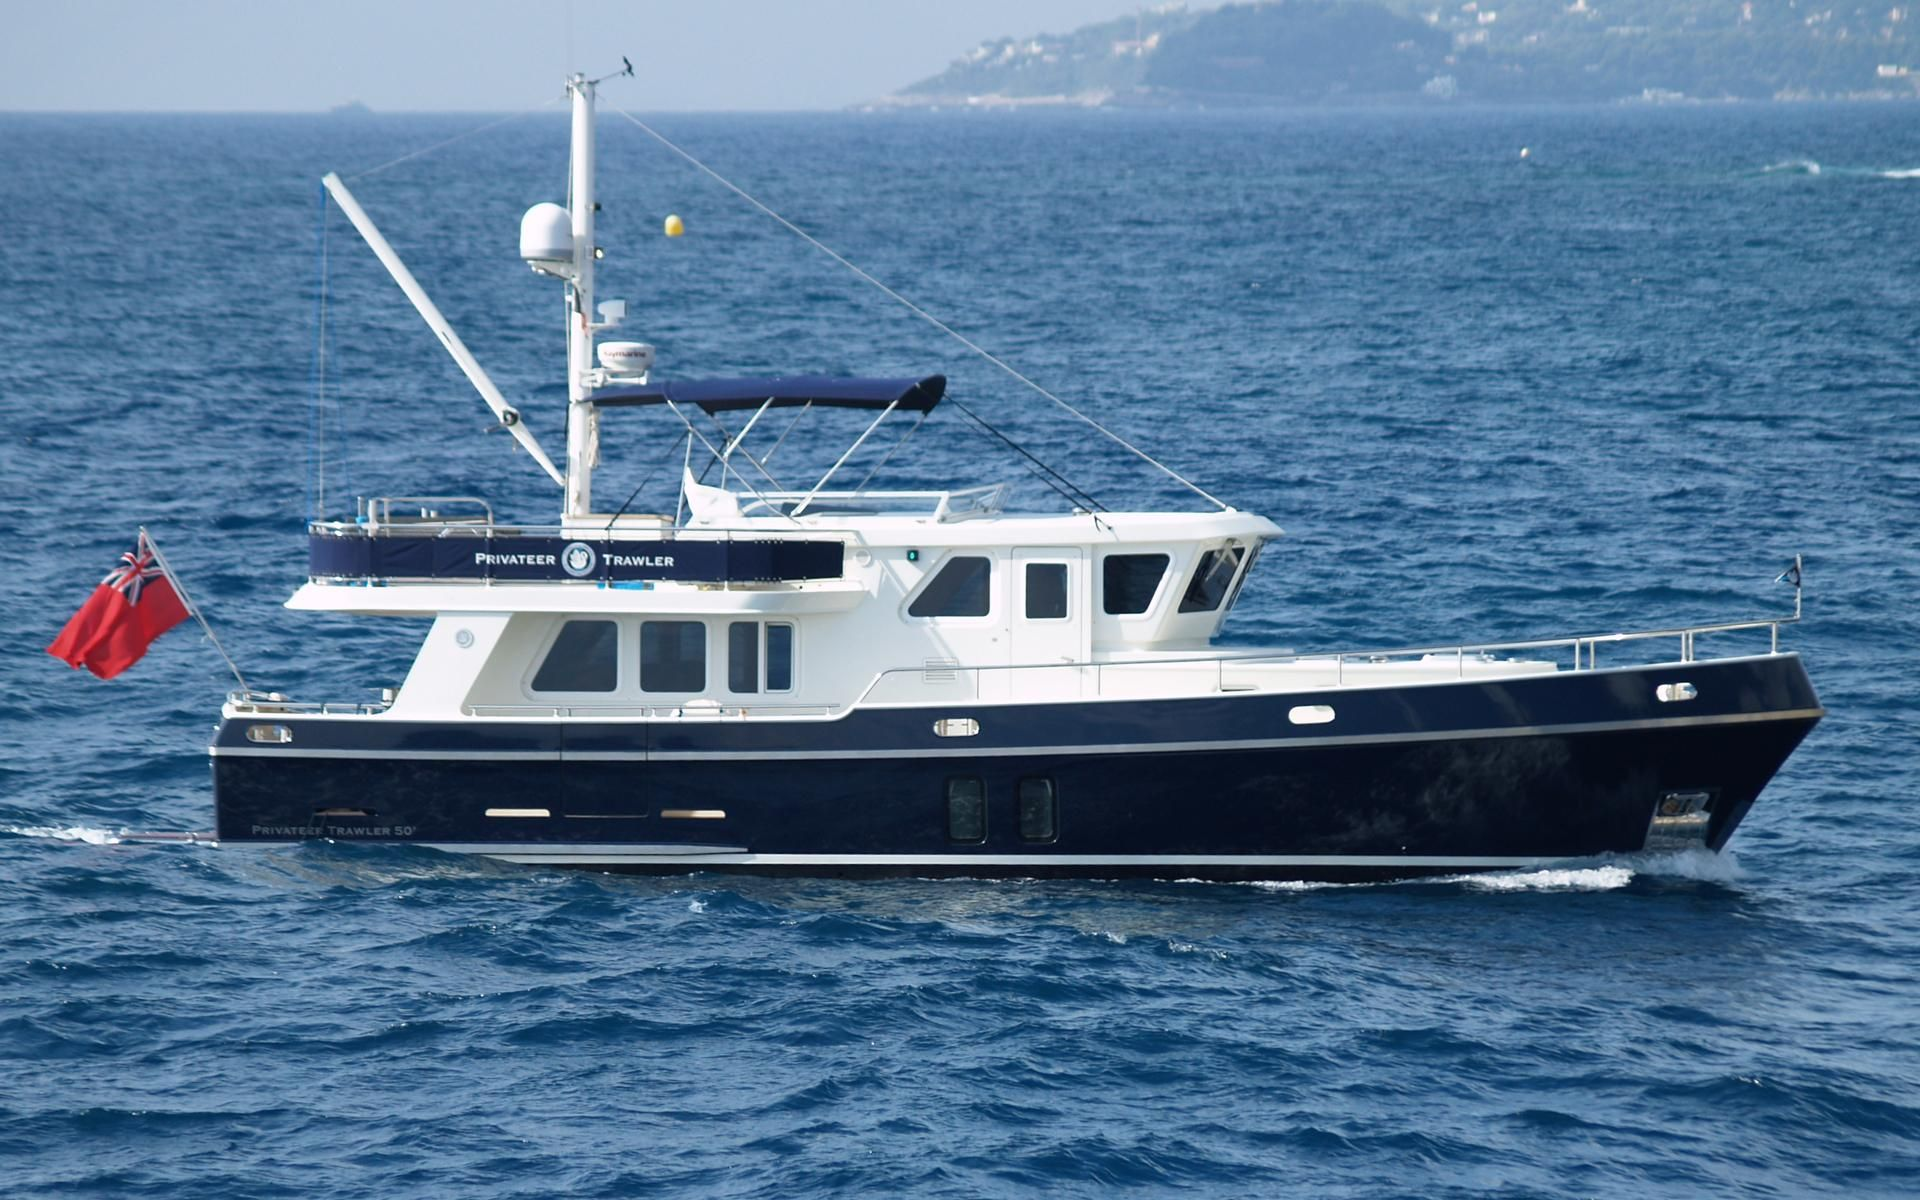 2012 privateer trawler 50 power boat for sale www for Fishing yachts for sale